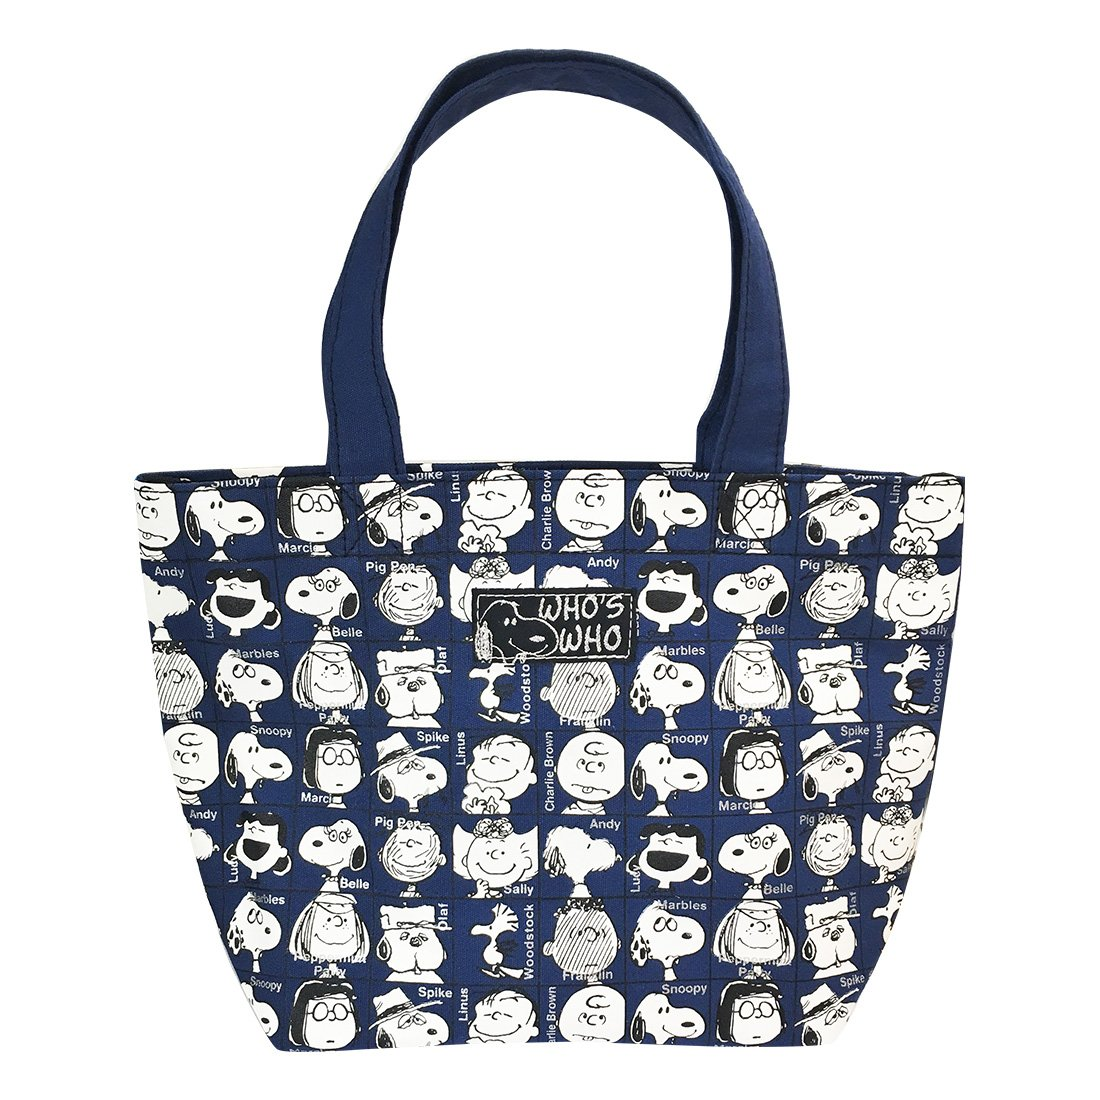 Peanuts Snoopy Mini Tote Bag Lunch Bag Who's WHO SNAP1945